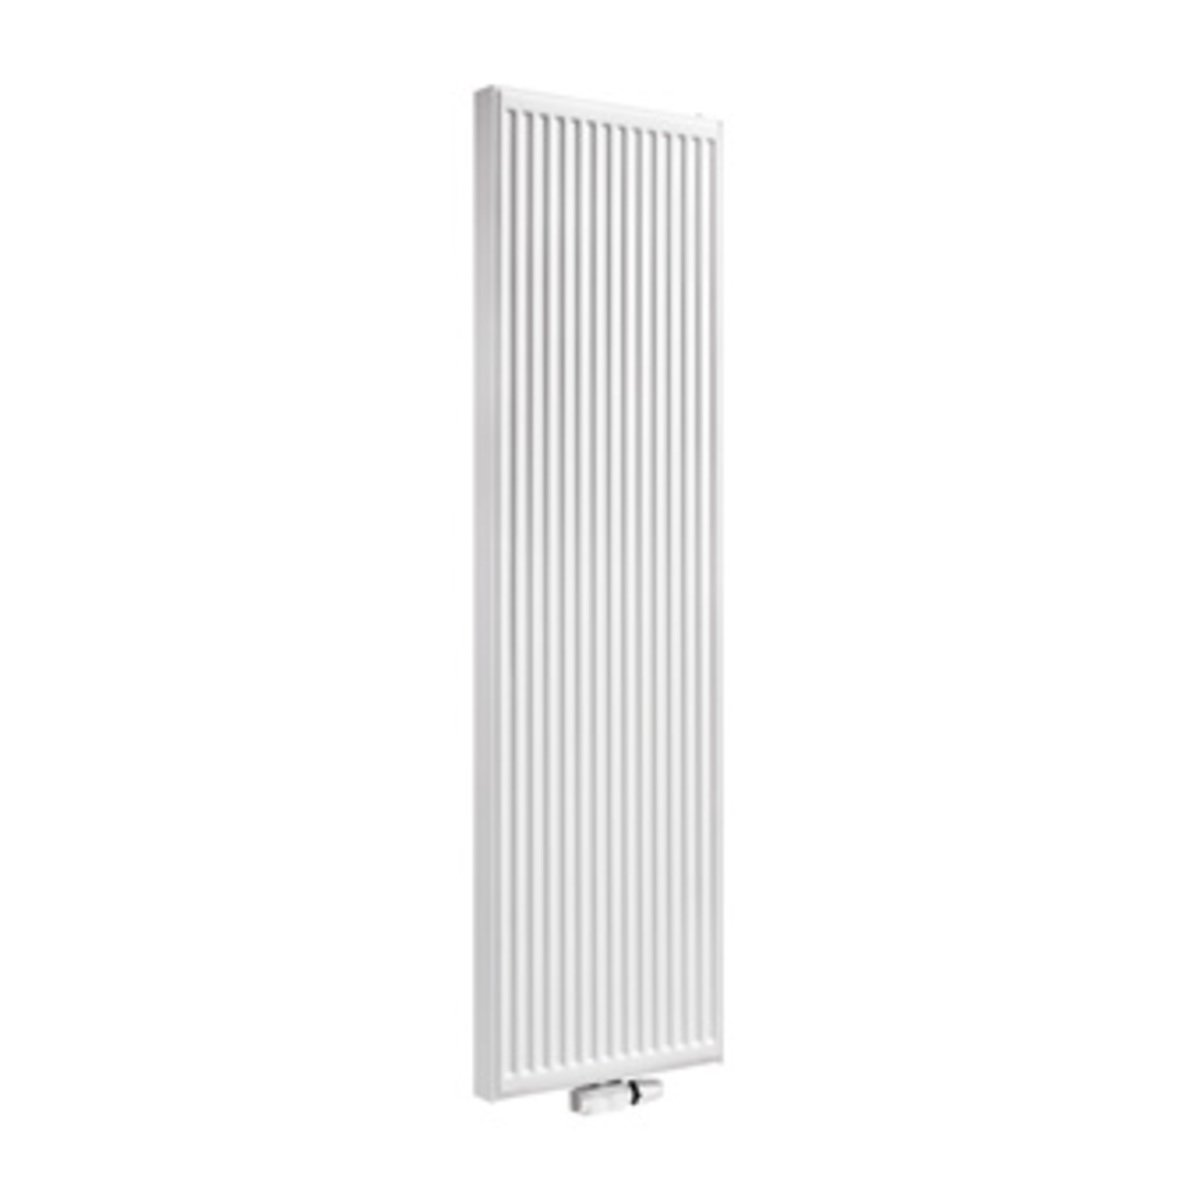 Badkamer Radiator 1600 Watt Stelrad Vertex Paneelradiator Type 11 1600x700mm 1570 Watt